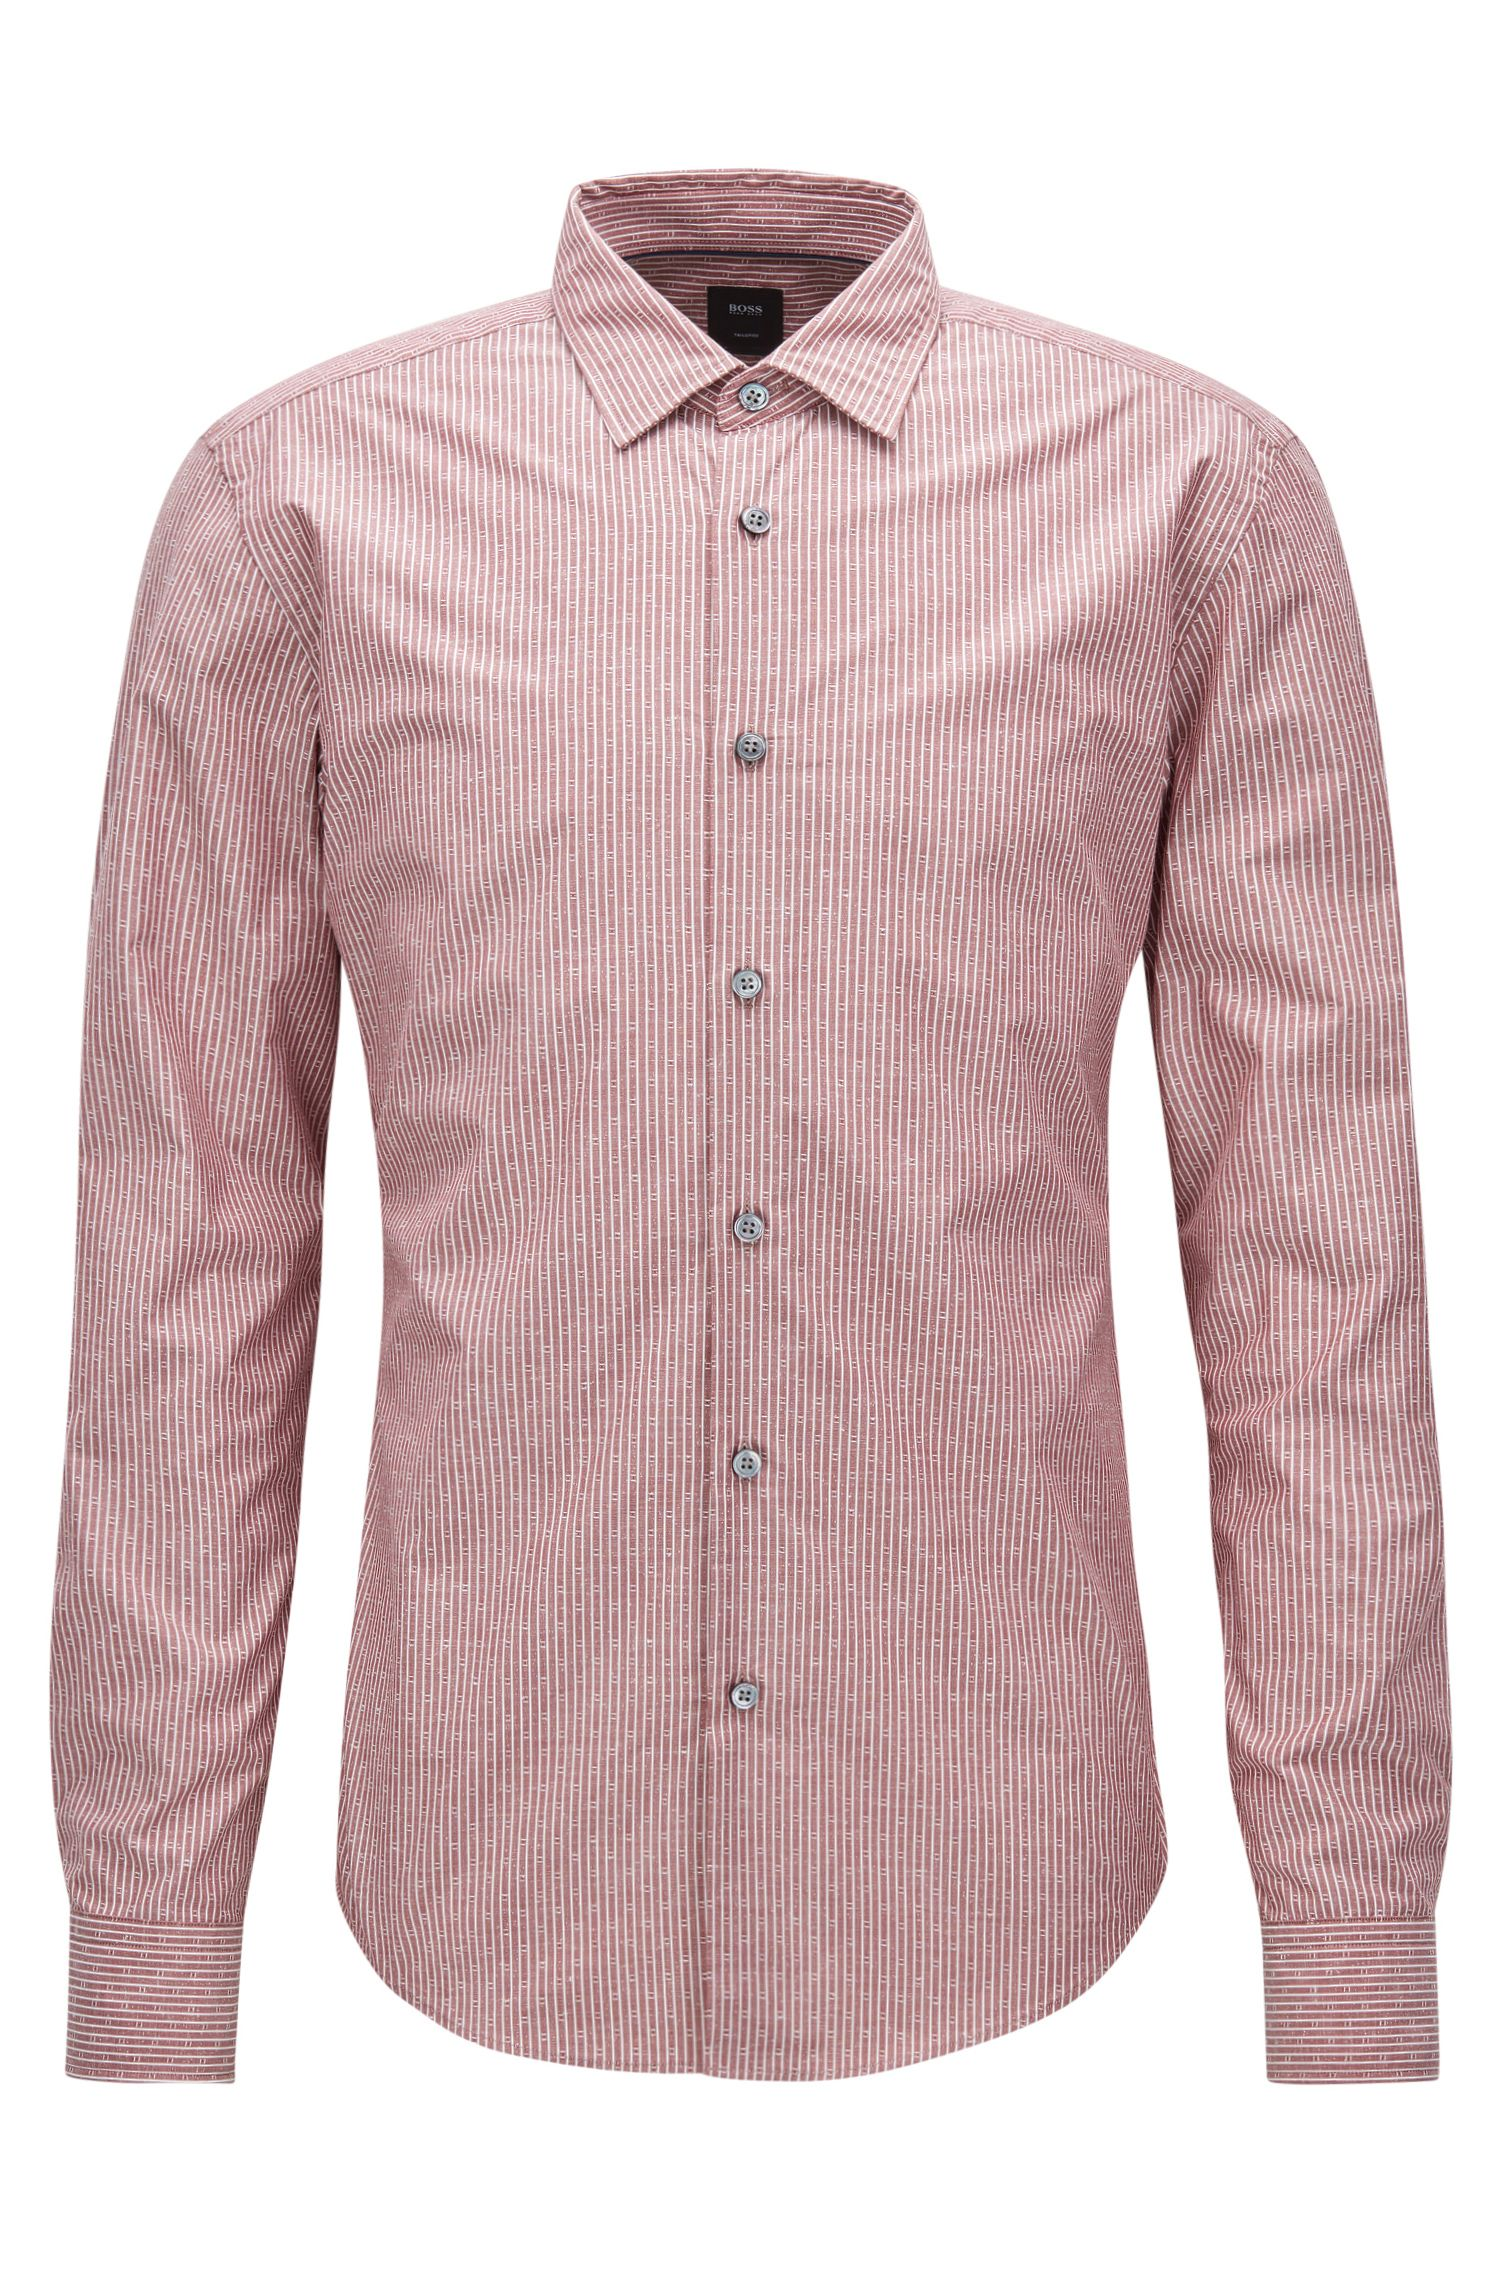 Slim-fit shirt in a cotton blend